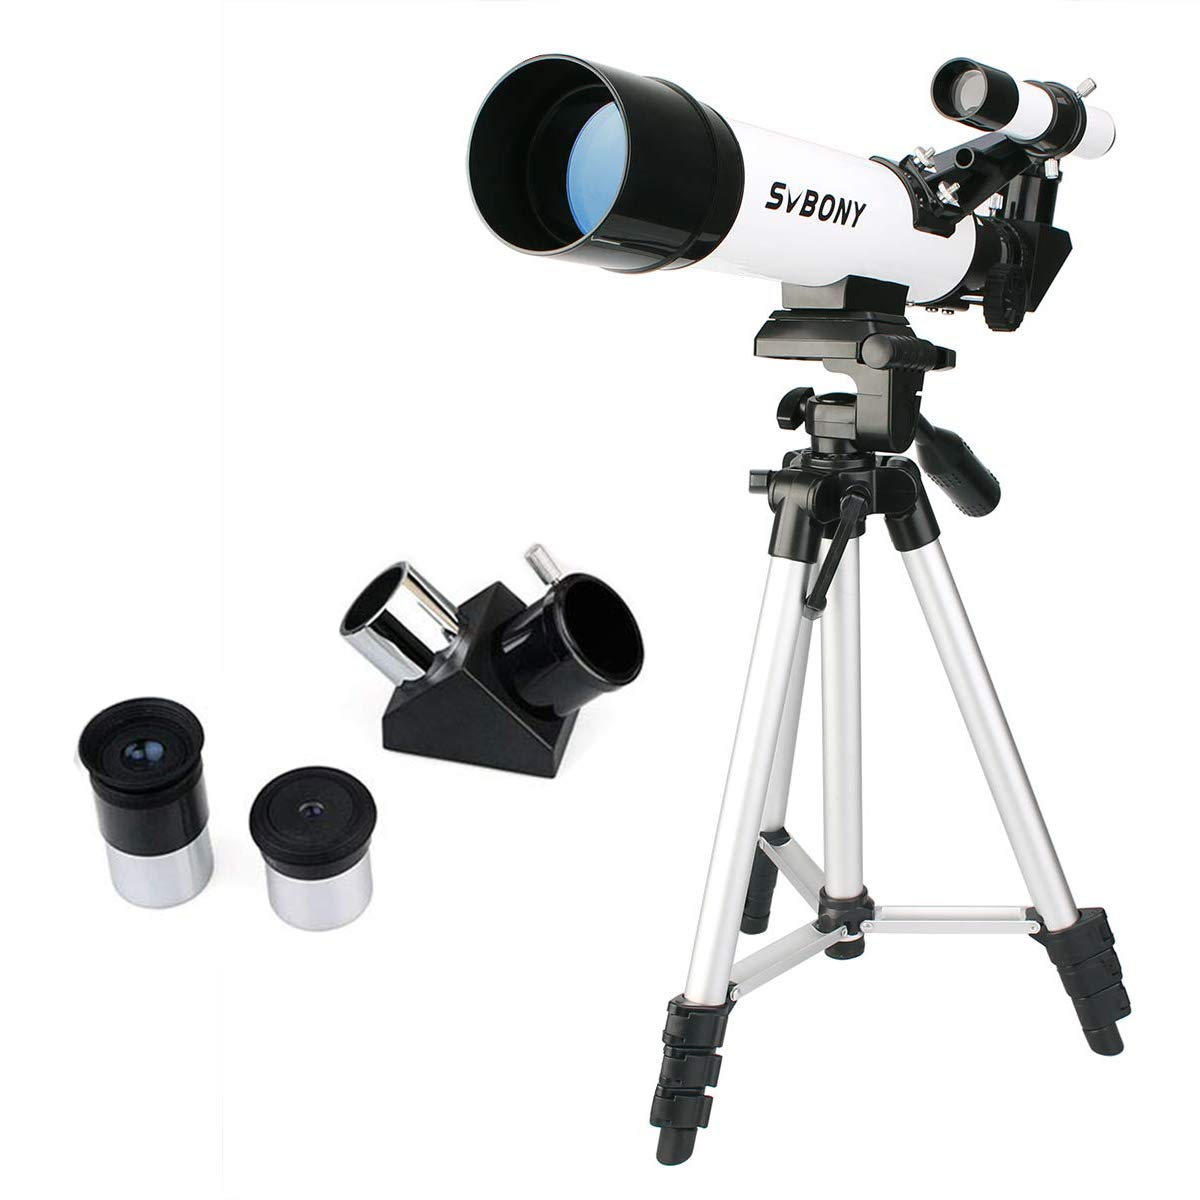 SVBONY SV25 Kids Telescope for Beginner Adult 60mm Travel Scope with Tripod Eyepiece Finder Scope by SVBONY